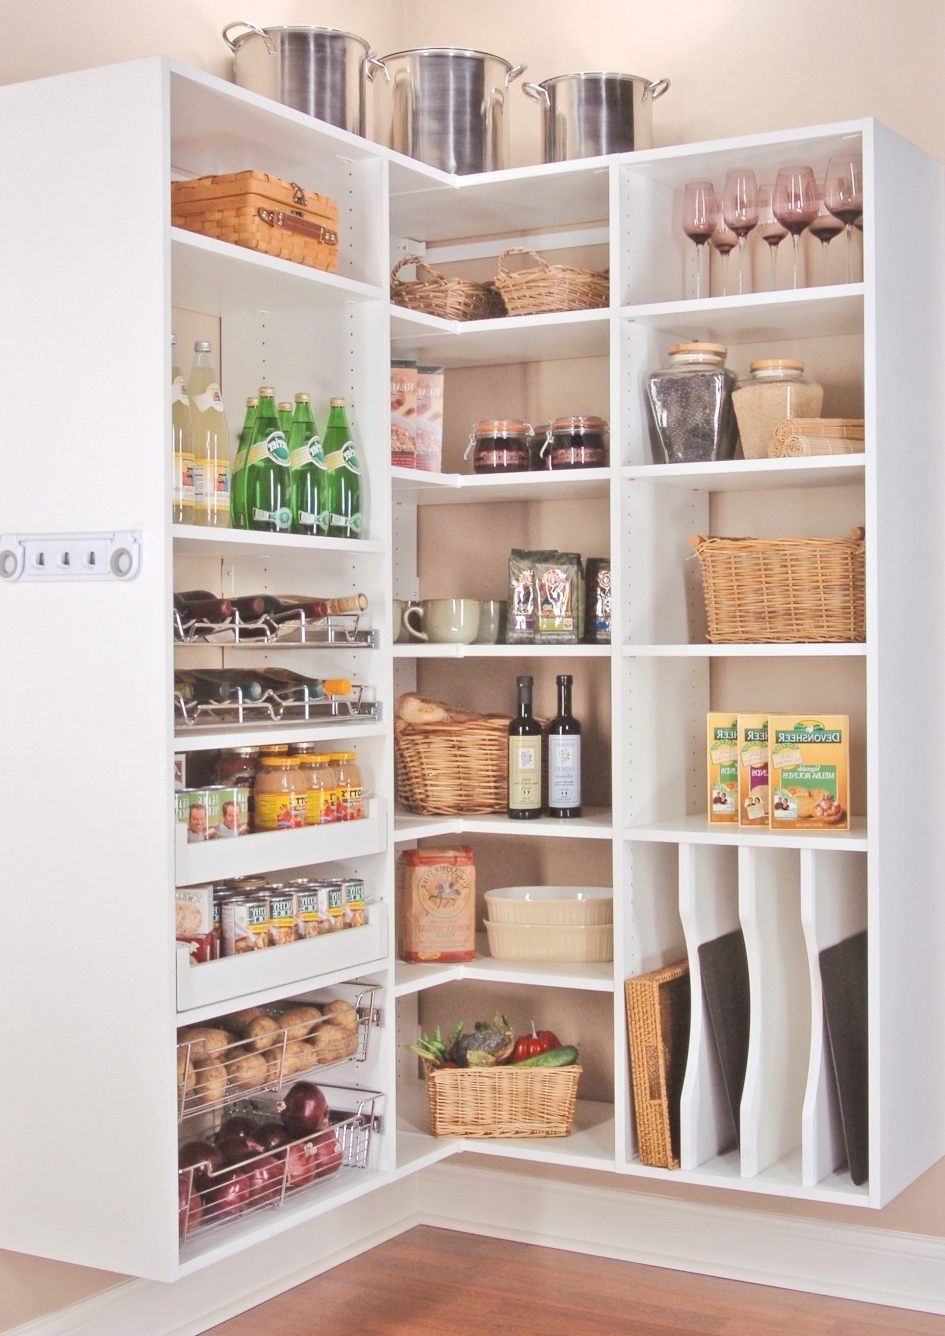 Current Wood Wall Mounted Corner Kitchen Shelving Unit Painted With White Throughout Painted Shelving Units (View 5 of 15)